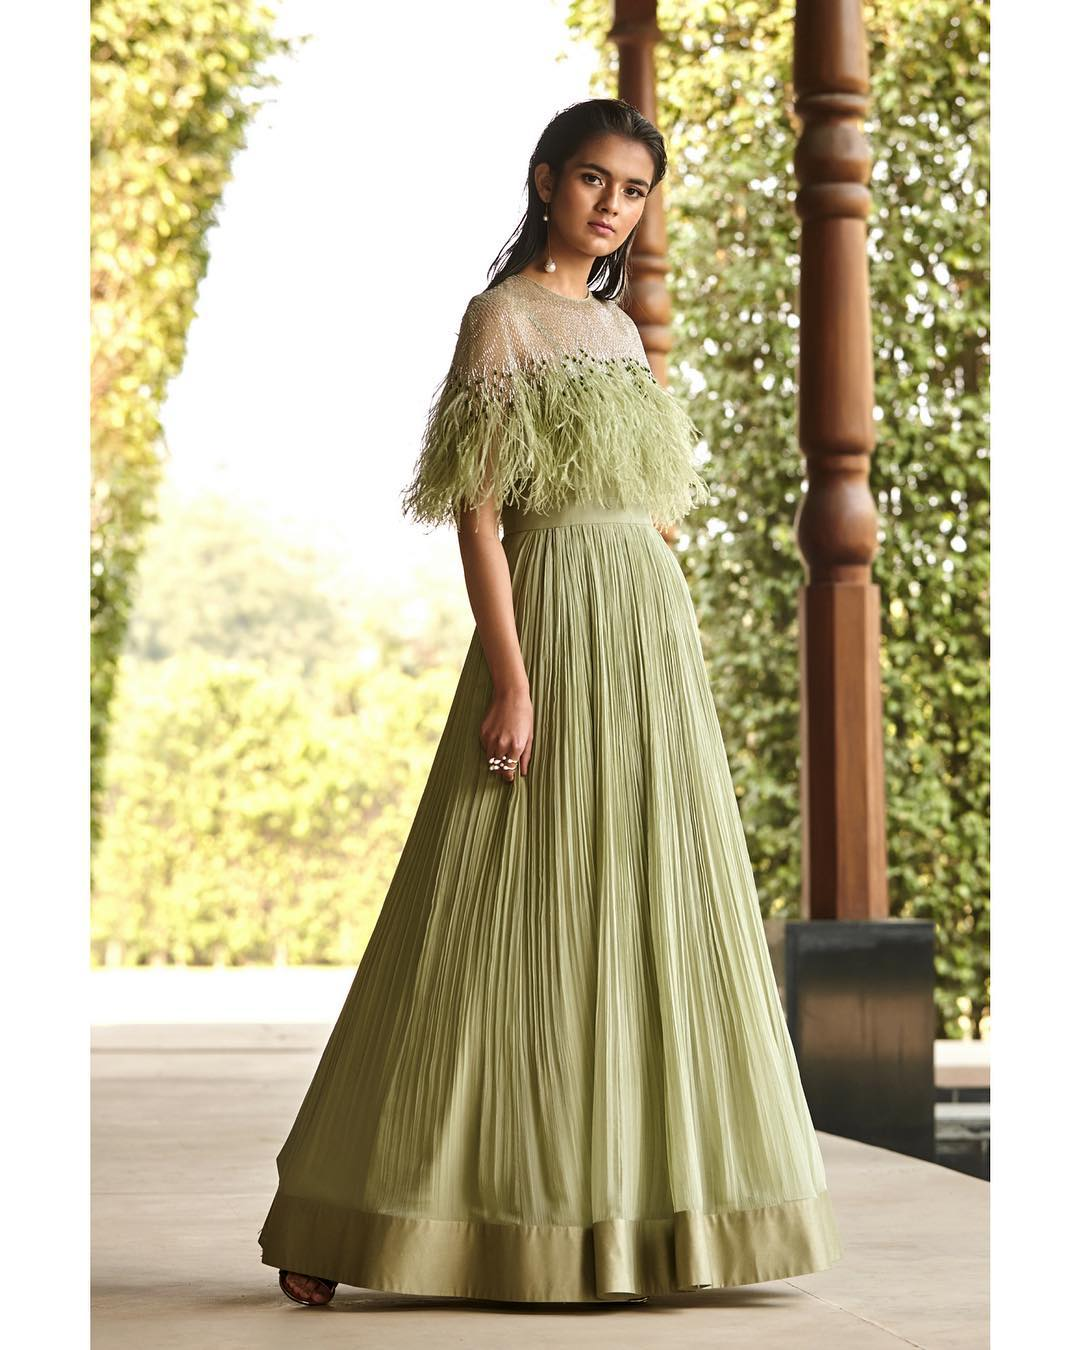 Engagement Dresses For Women In India